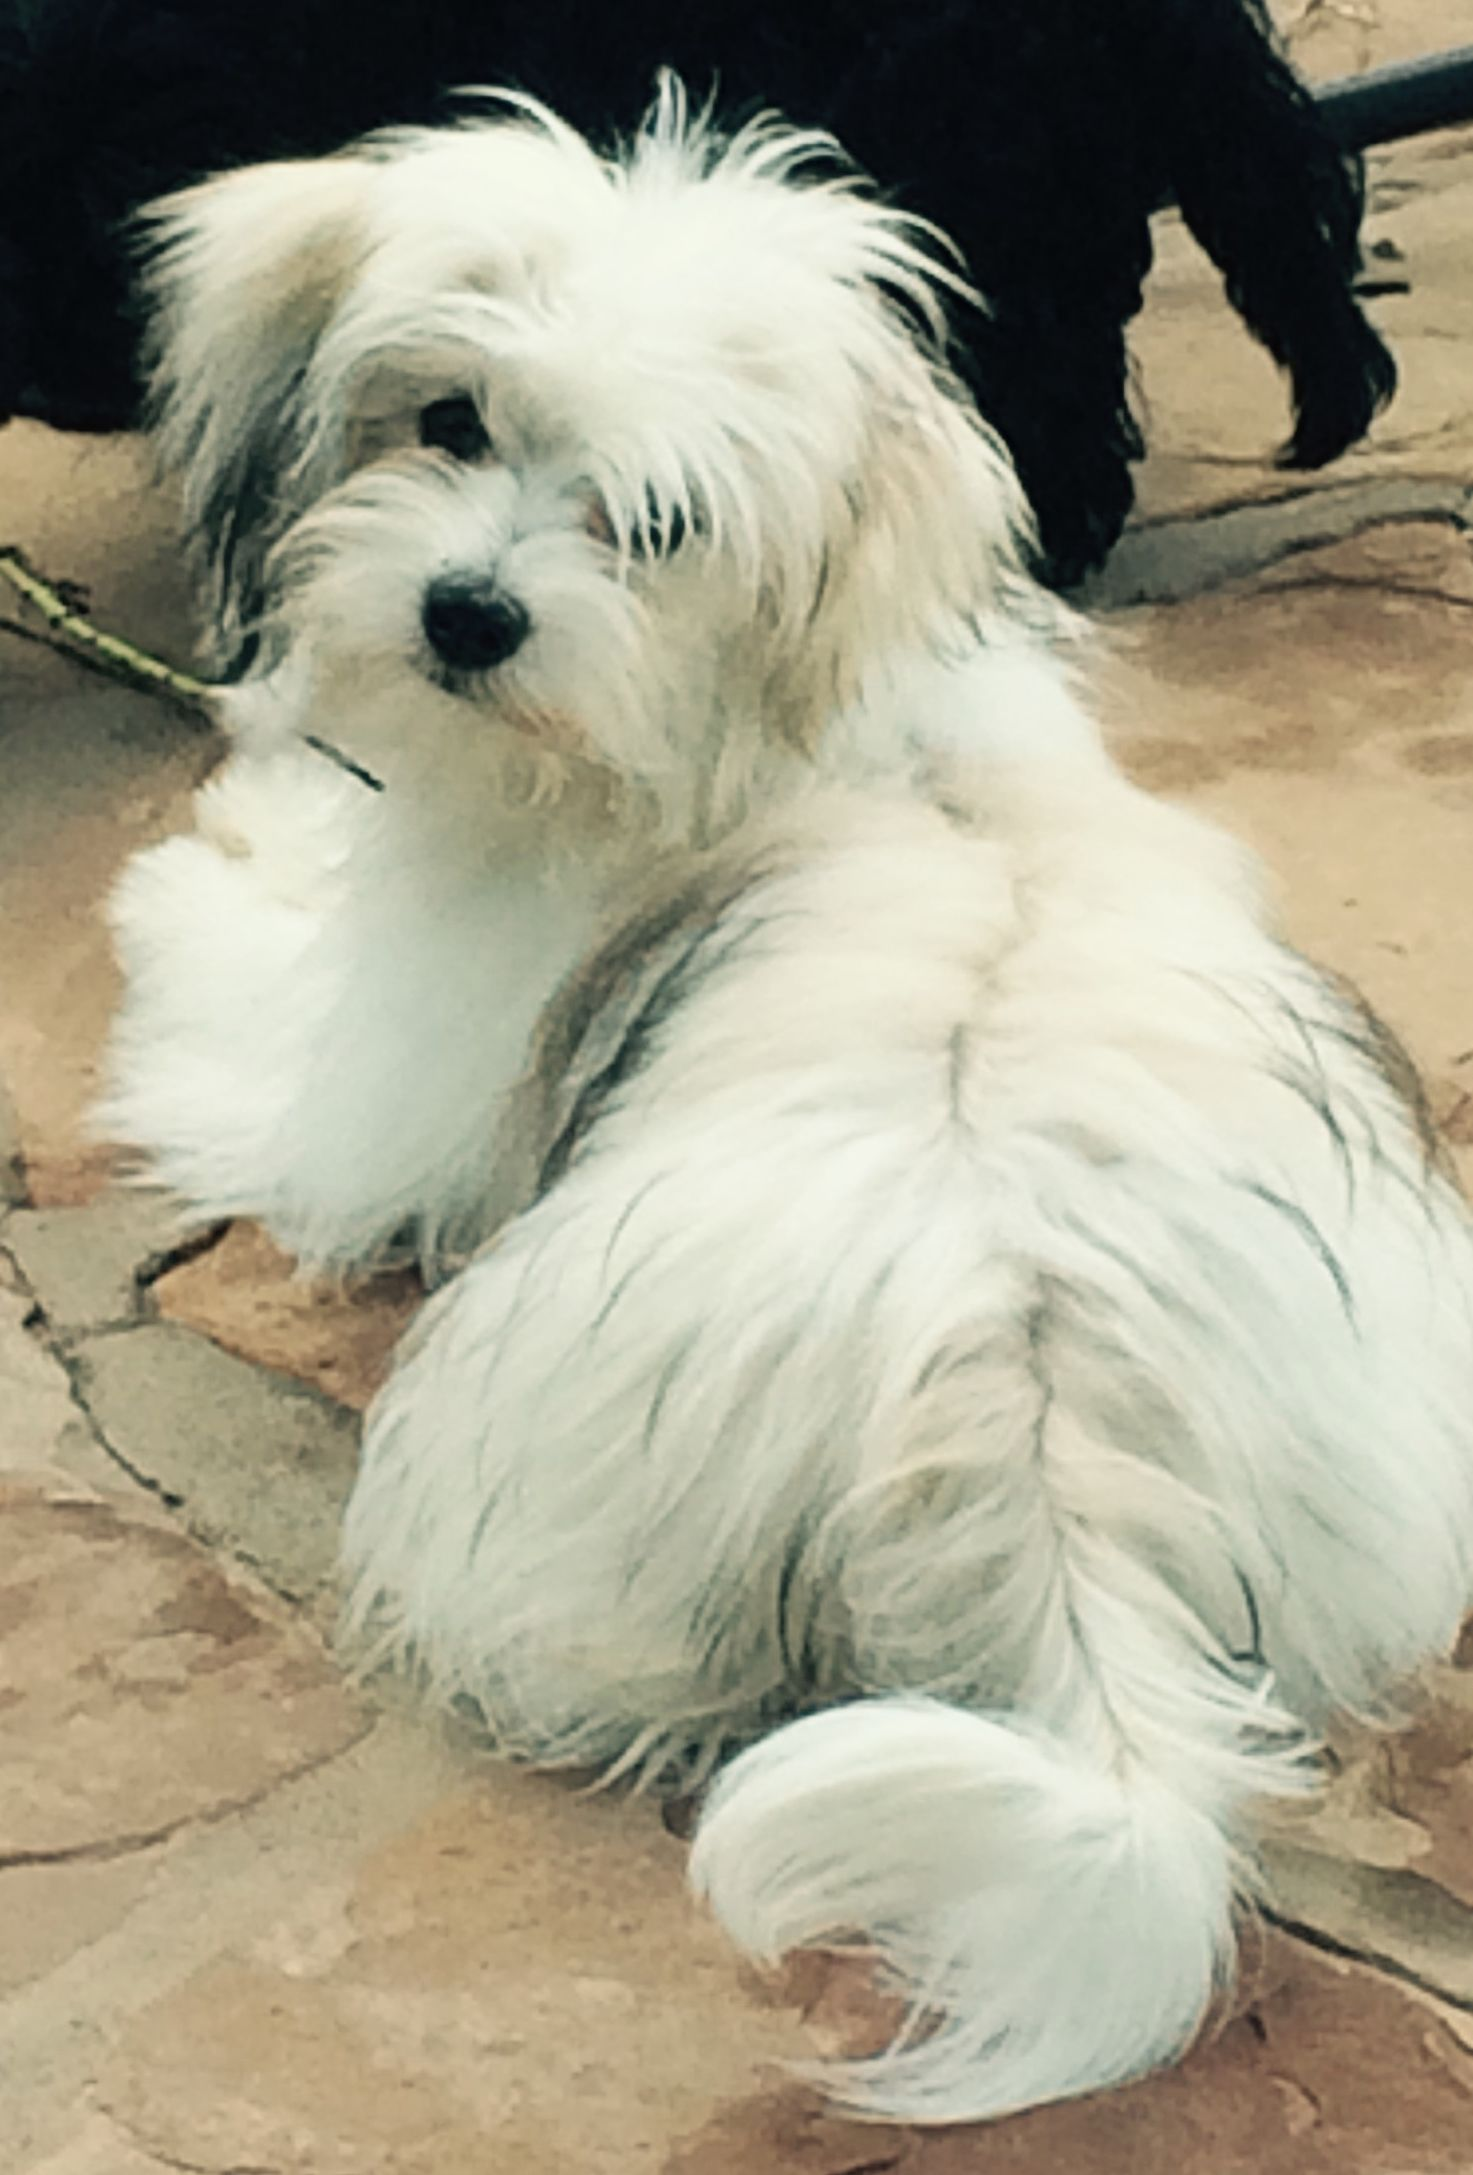 The Havanese Belongs To The Bichon Group Of Small Dogs Developed In The Mediterranean Long Ago Learn More About Pe Havanese Dogs Havanese Puppies Havanese